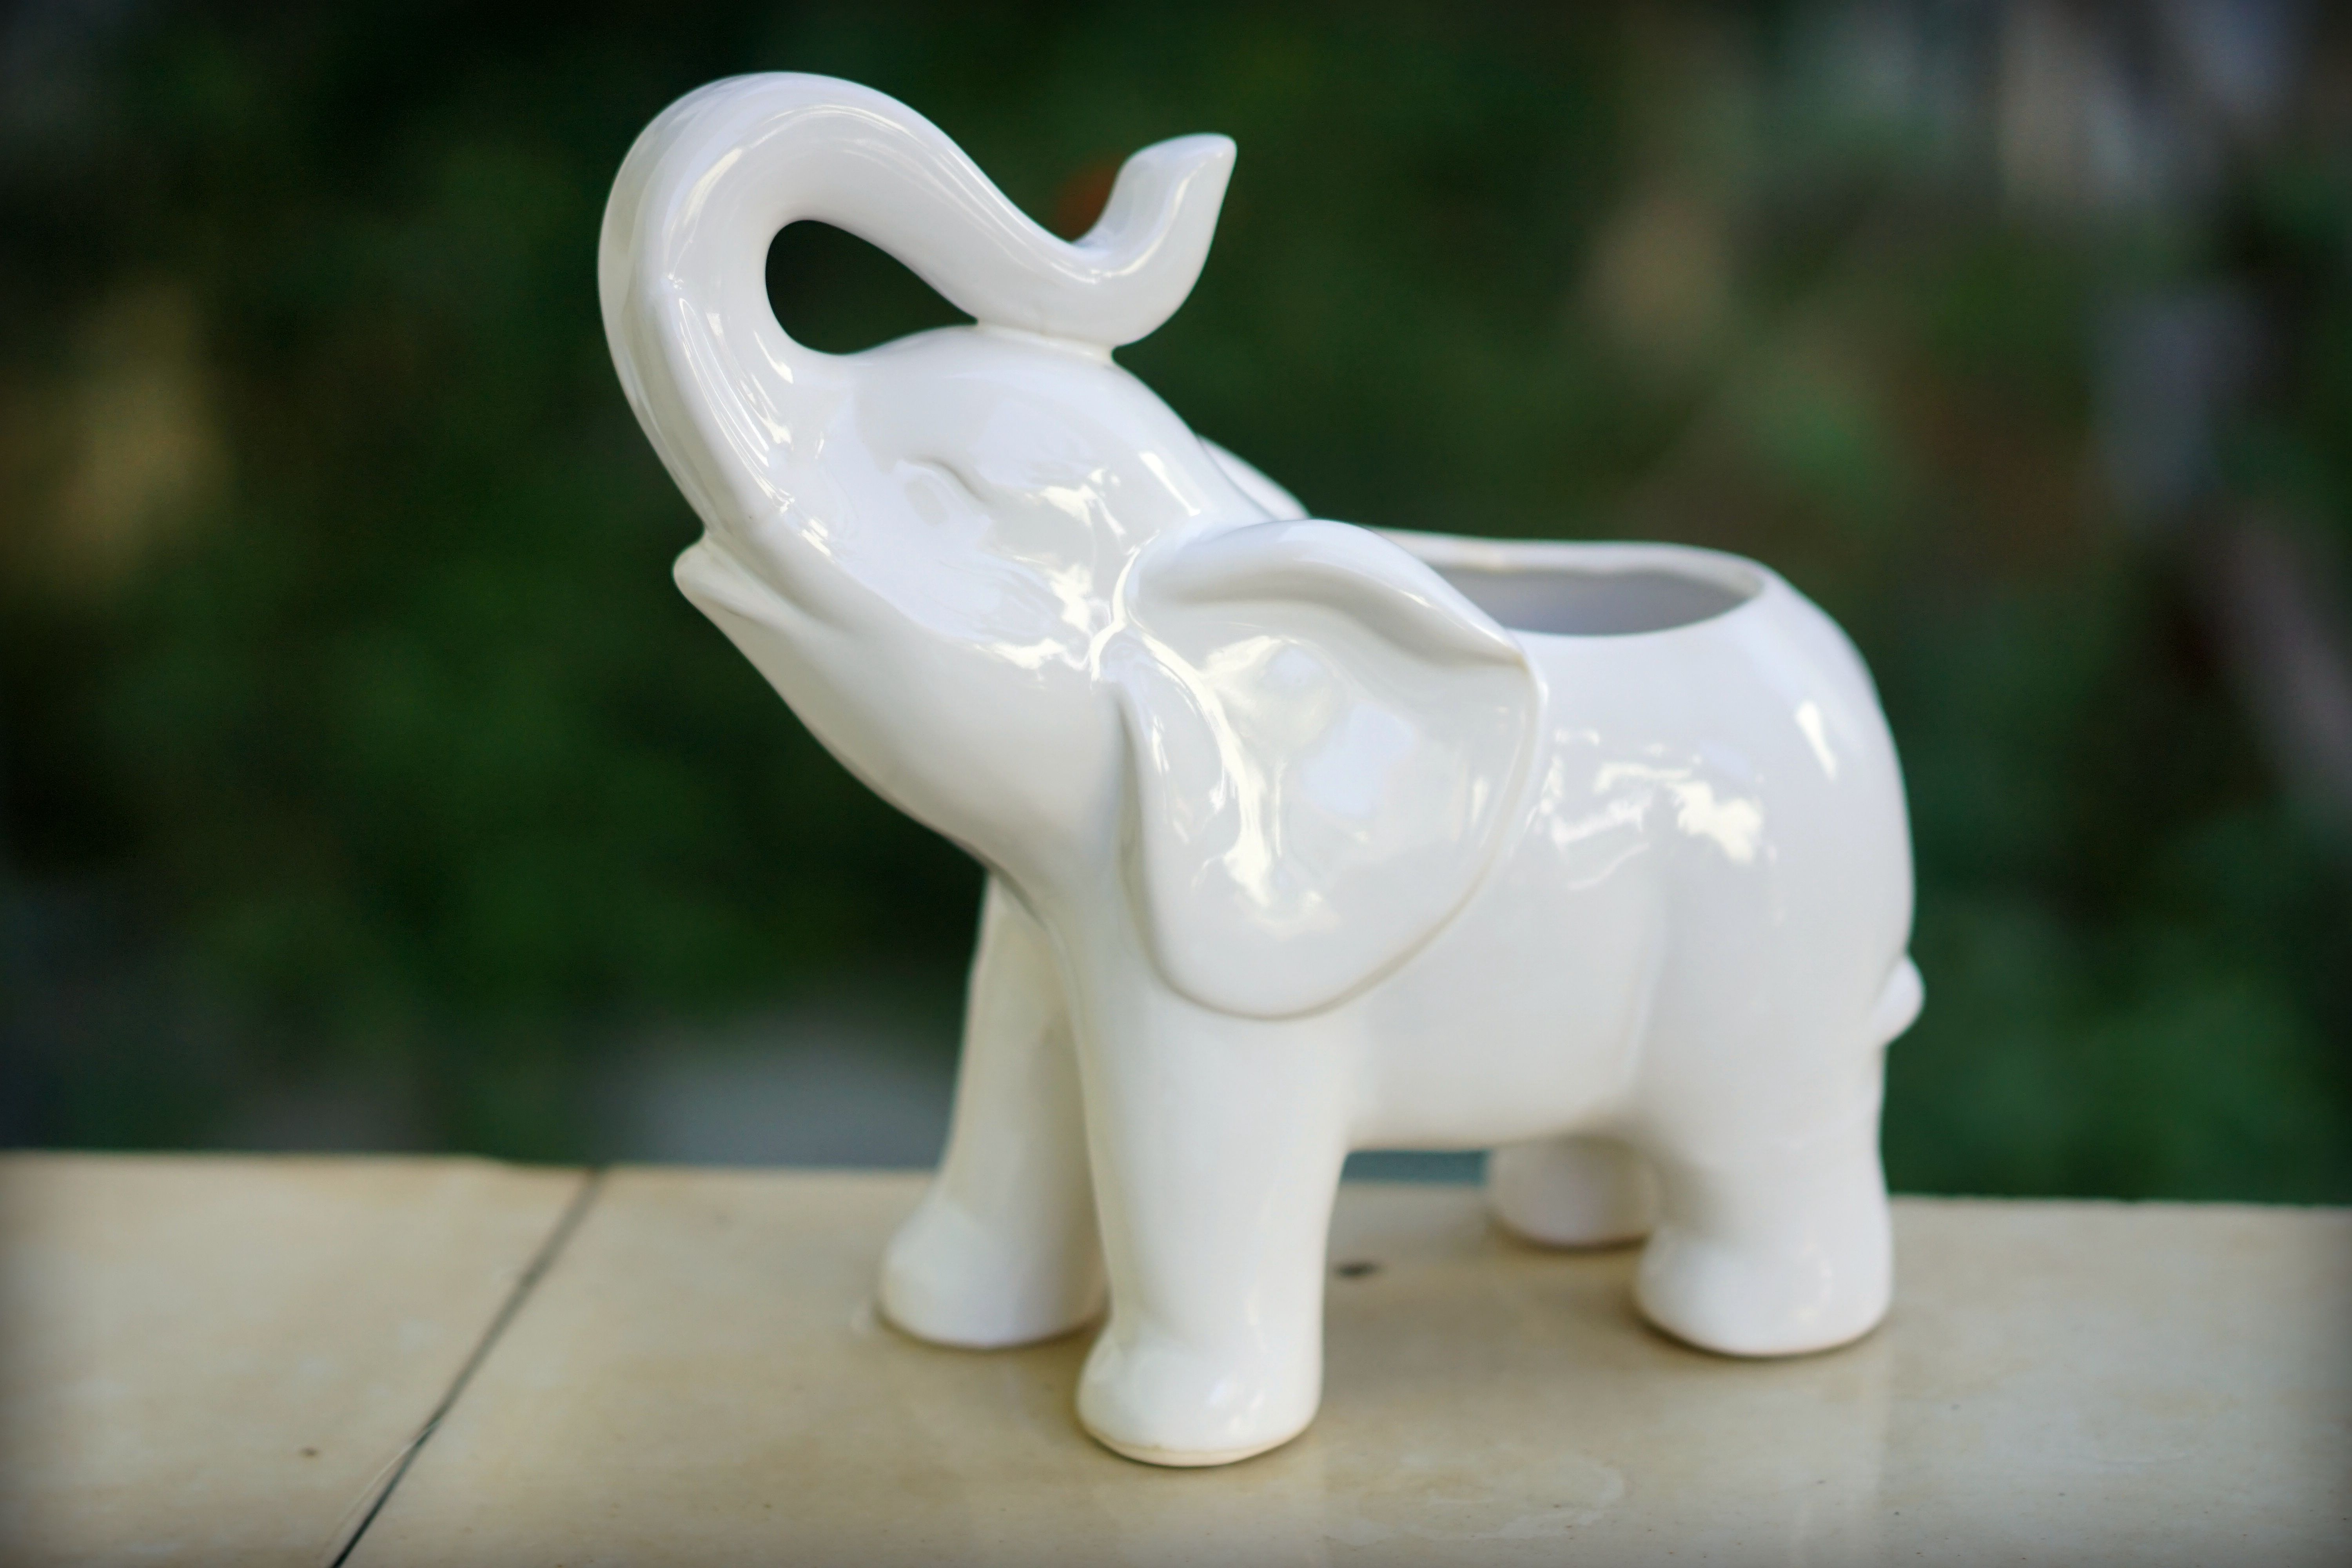 Better Homes and Gardens 10 in. Outdoor Elephant Planter by HK YIBO CERAMICS LIMITED